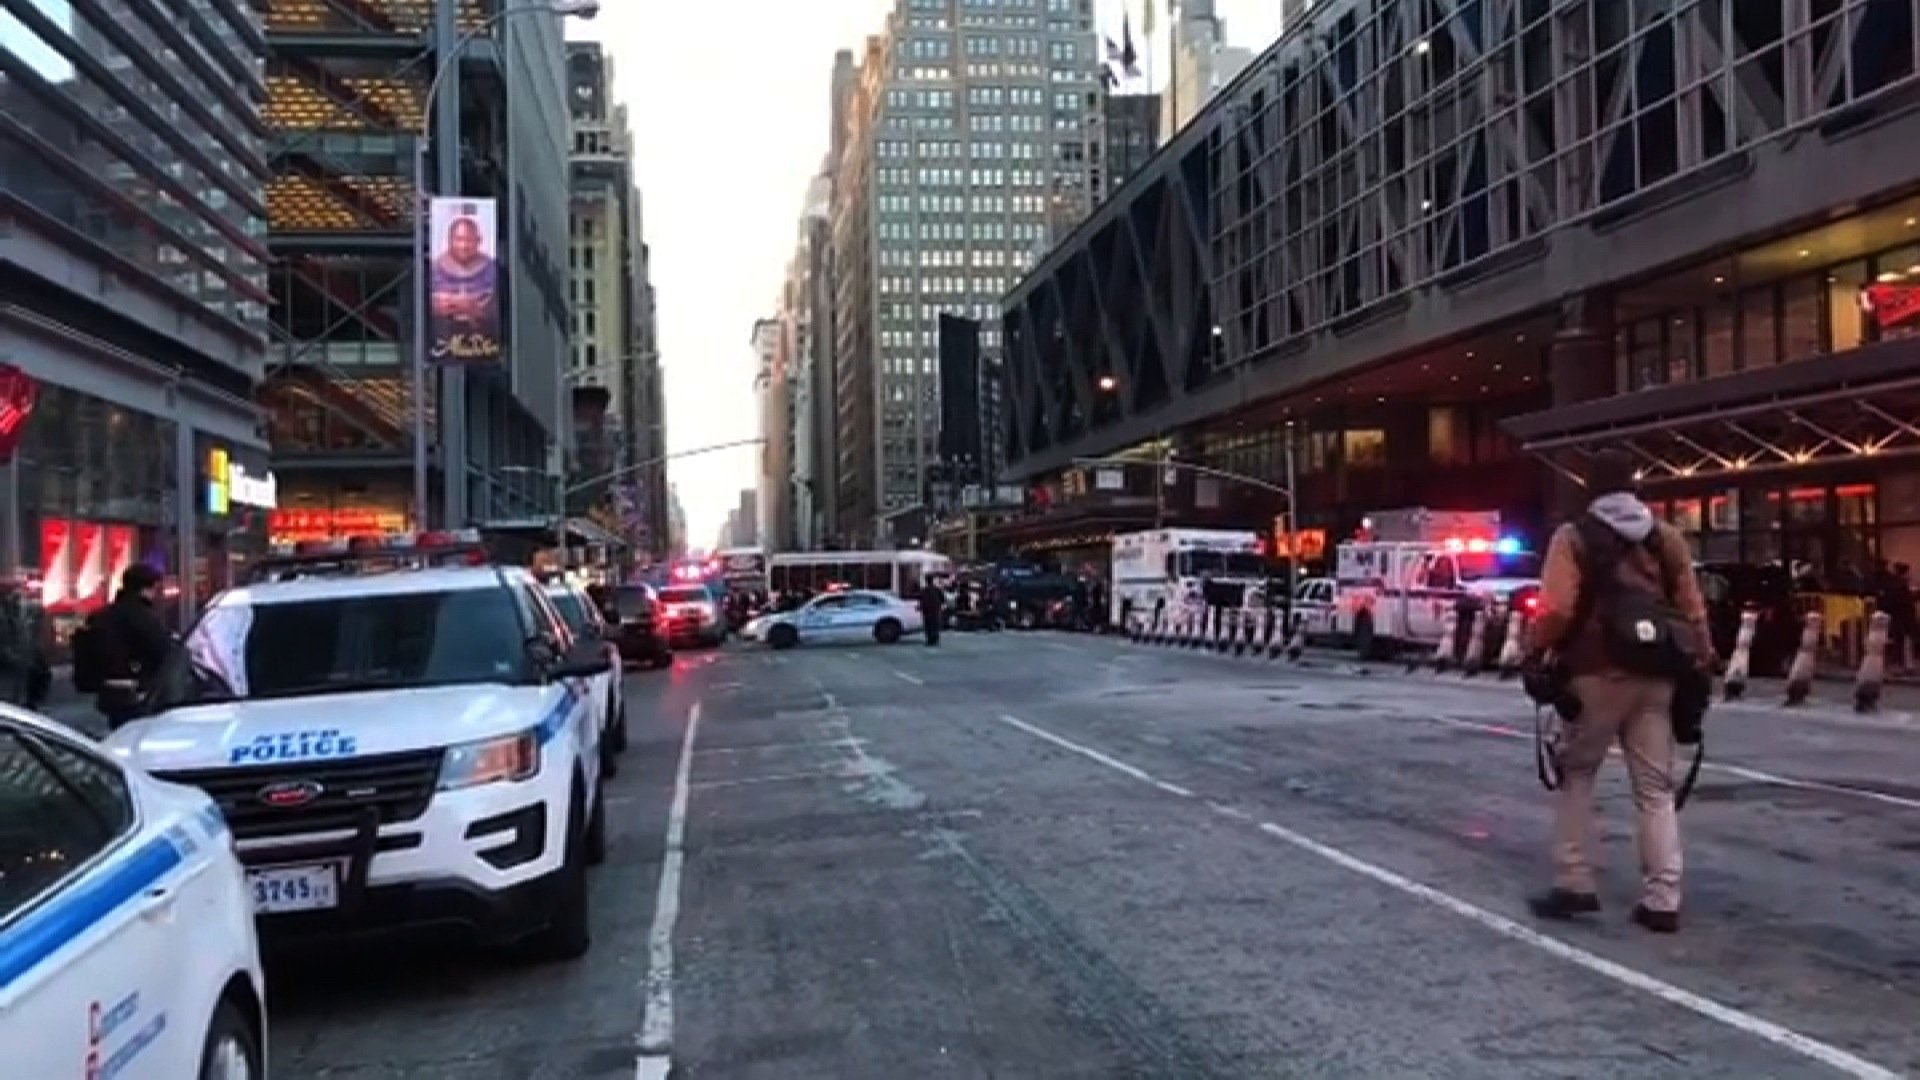 Police are responding to reports of a possible explosion on the A C and E subway lines near 42nd Street and Eighth Avenue New York Police Department Sgt. Brendan Ryan said Monday